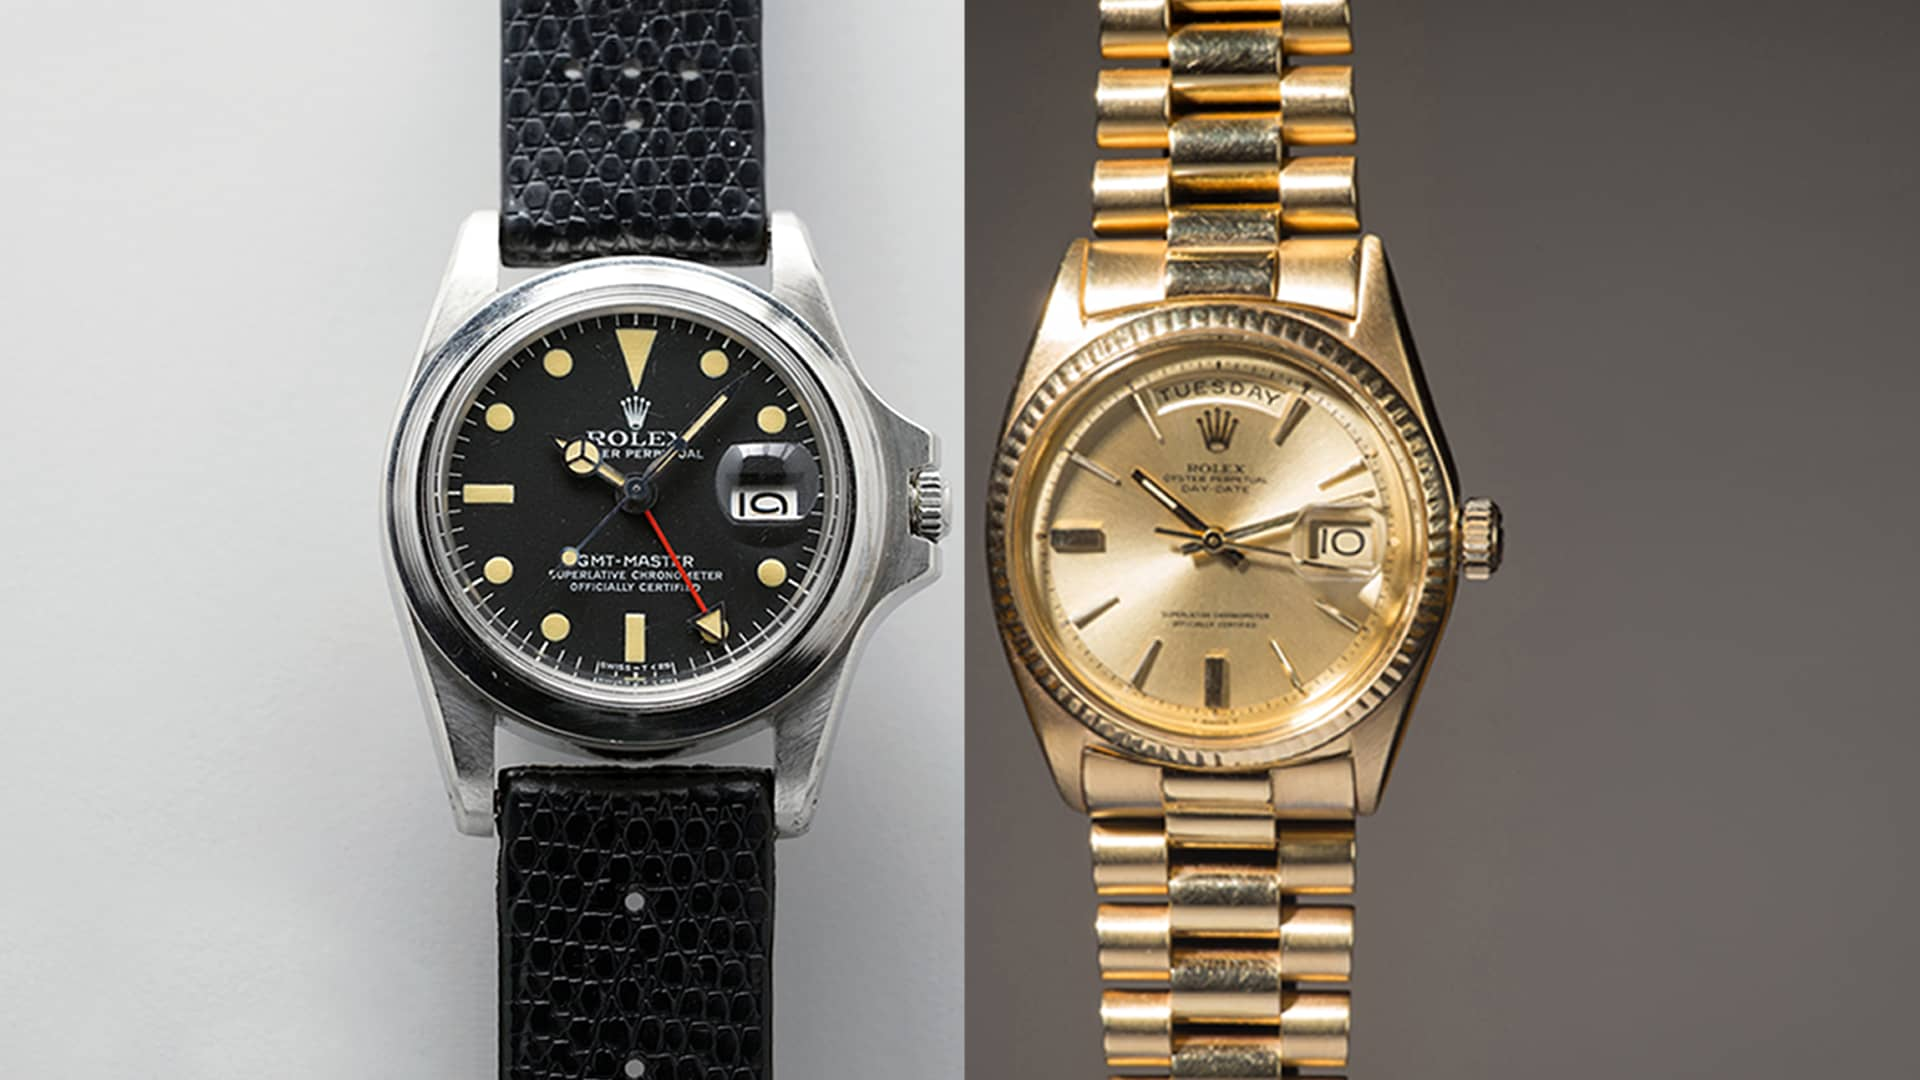 Jack Nicklaus' gold Rolex watch sells for $1 million at auction